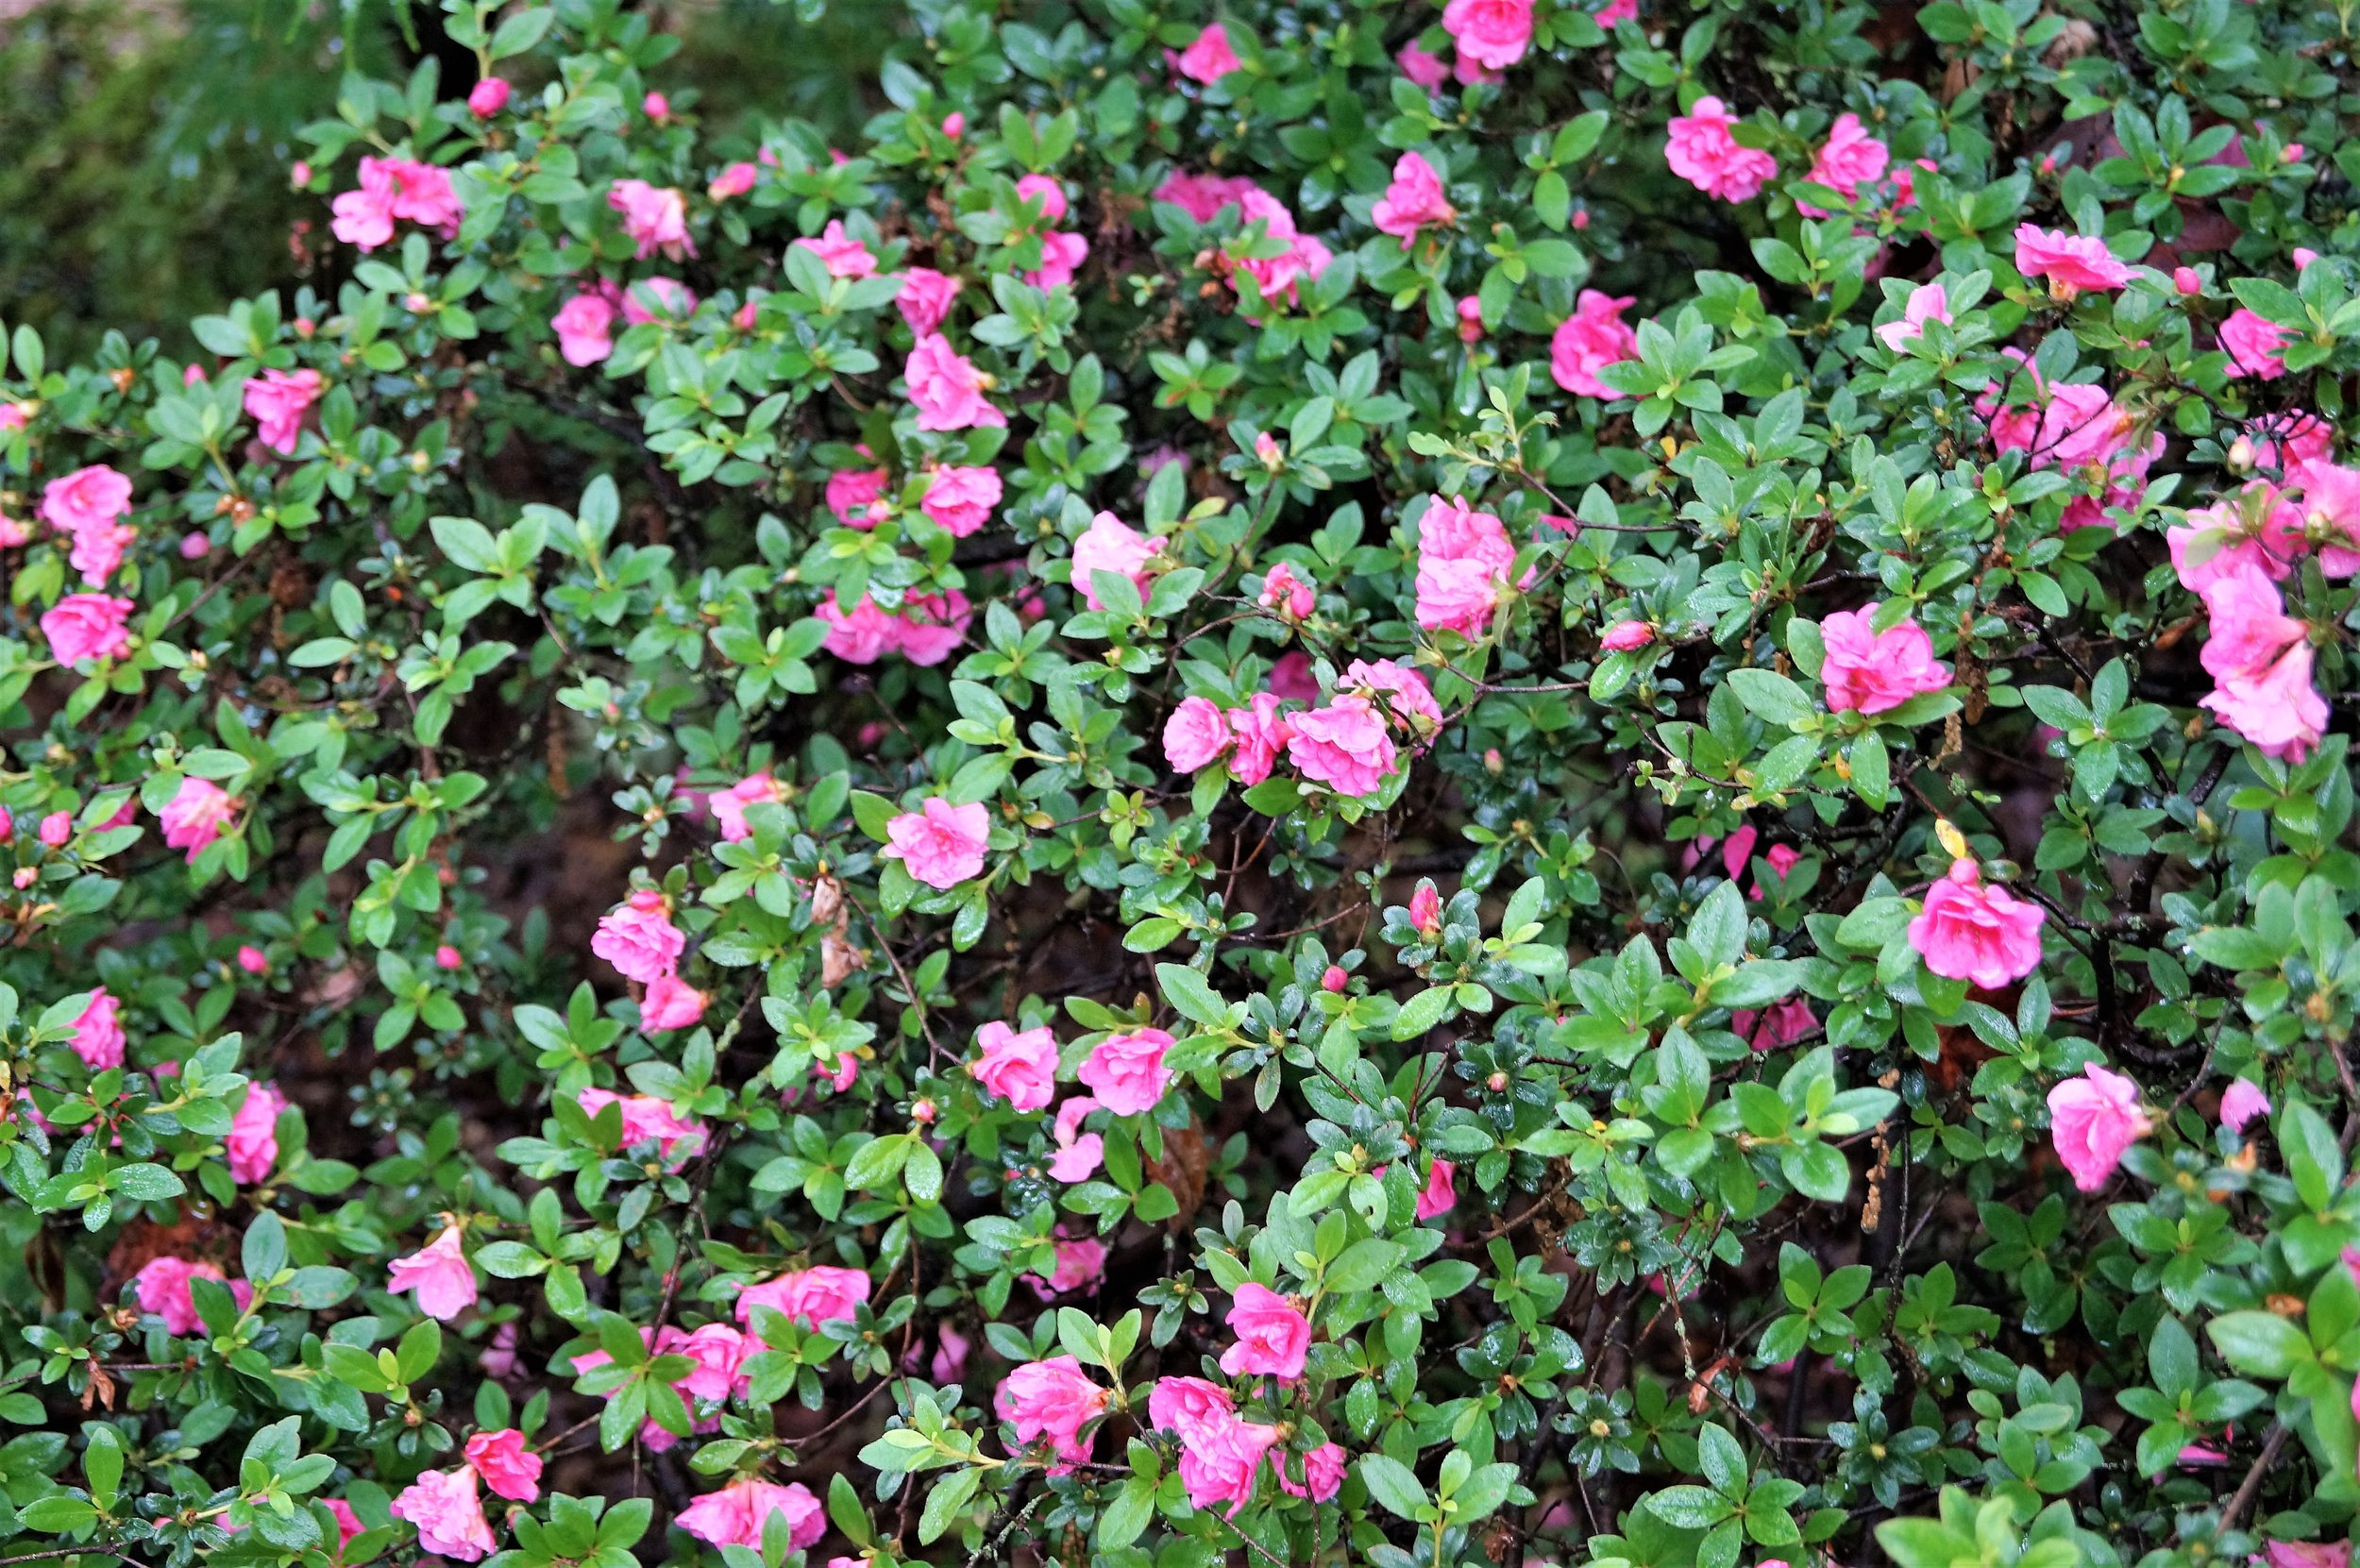 Azalea 'Huang 2-7-51' has very small pink blooms to enjoy from late April through mid May. We have several in 1 gallon containers still available!